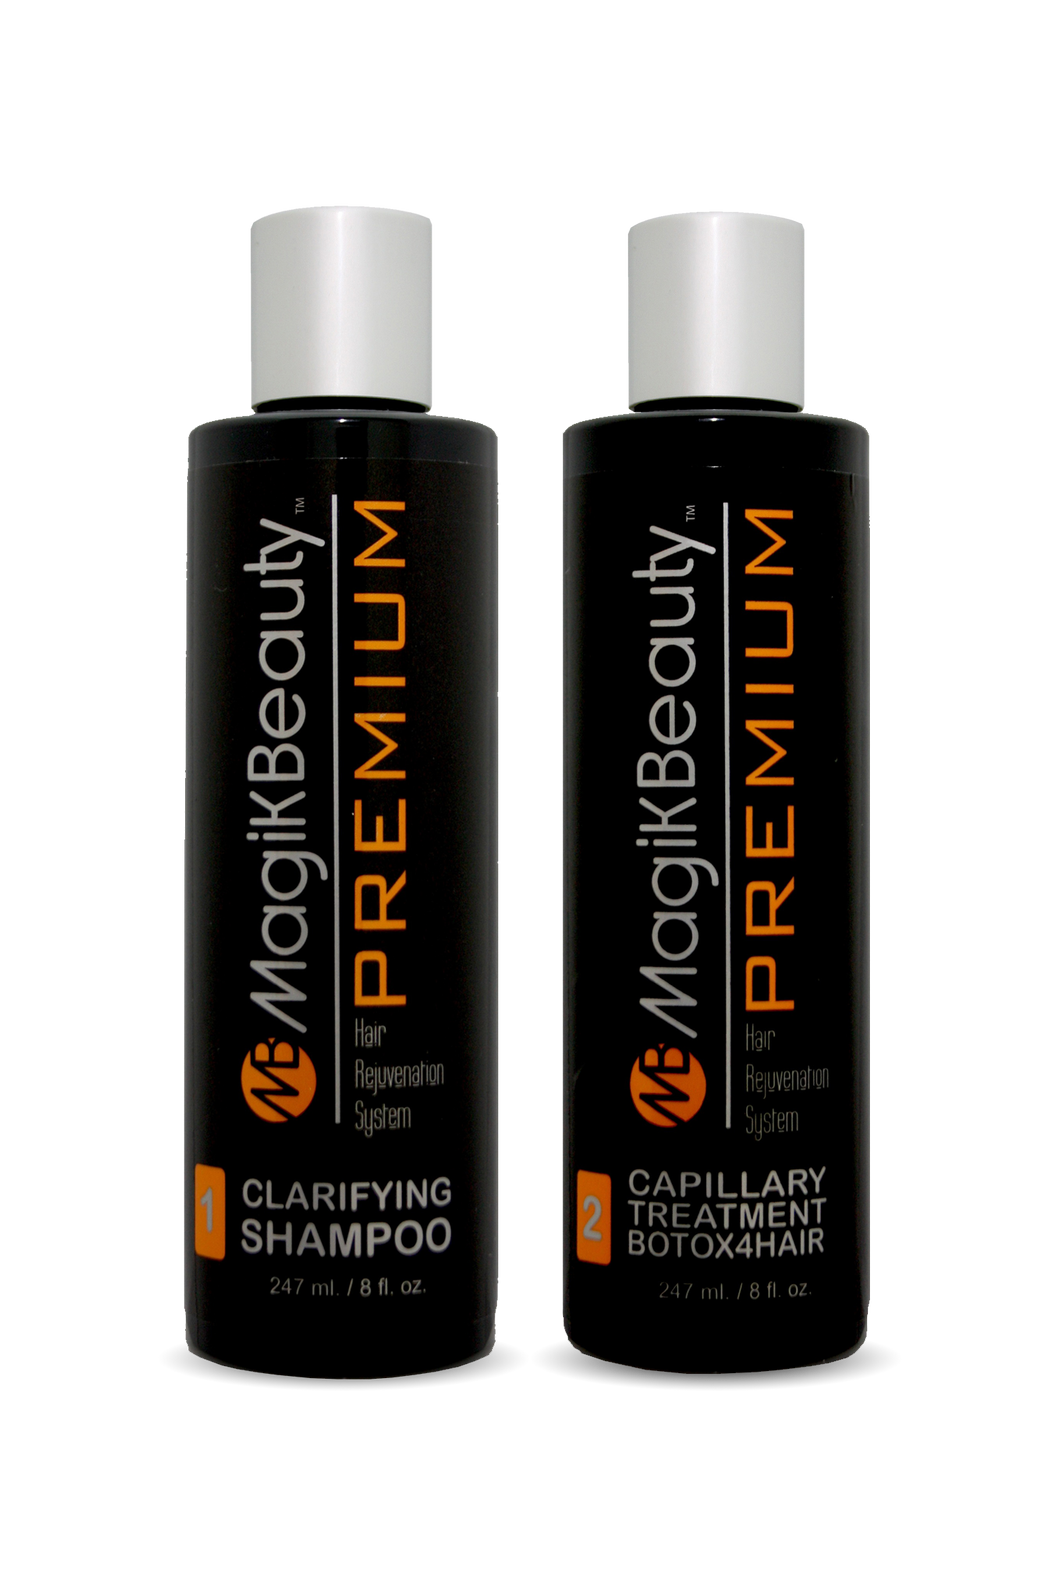 MB Premium - Duo Clarifying Shampoo + BTX4HAIR Capillary treatment